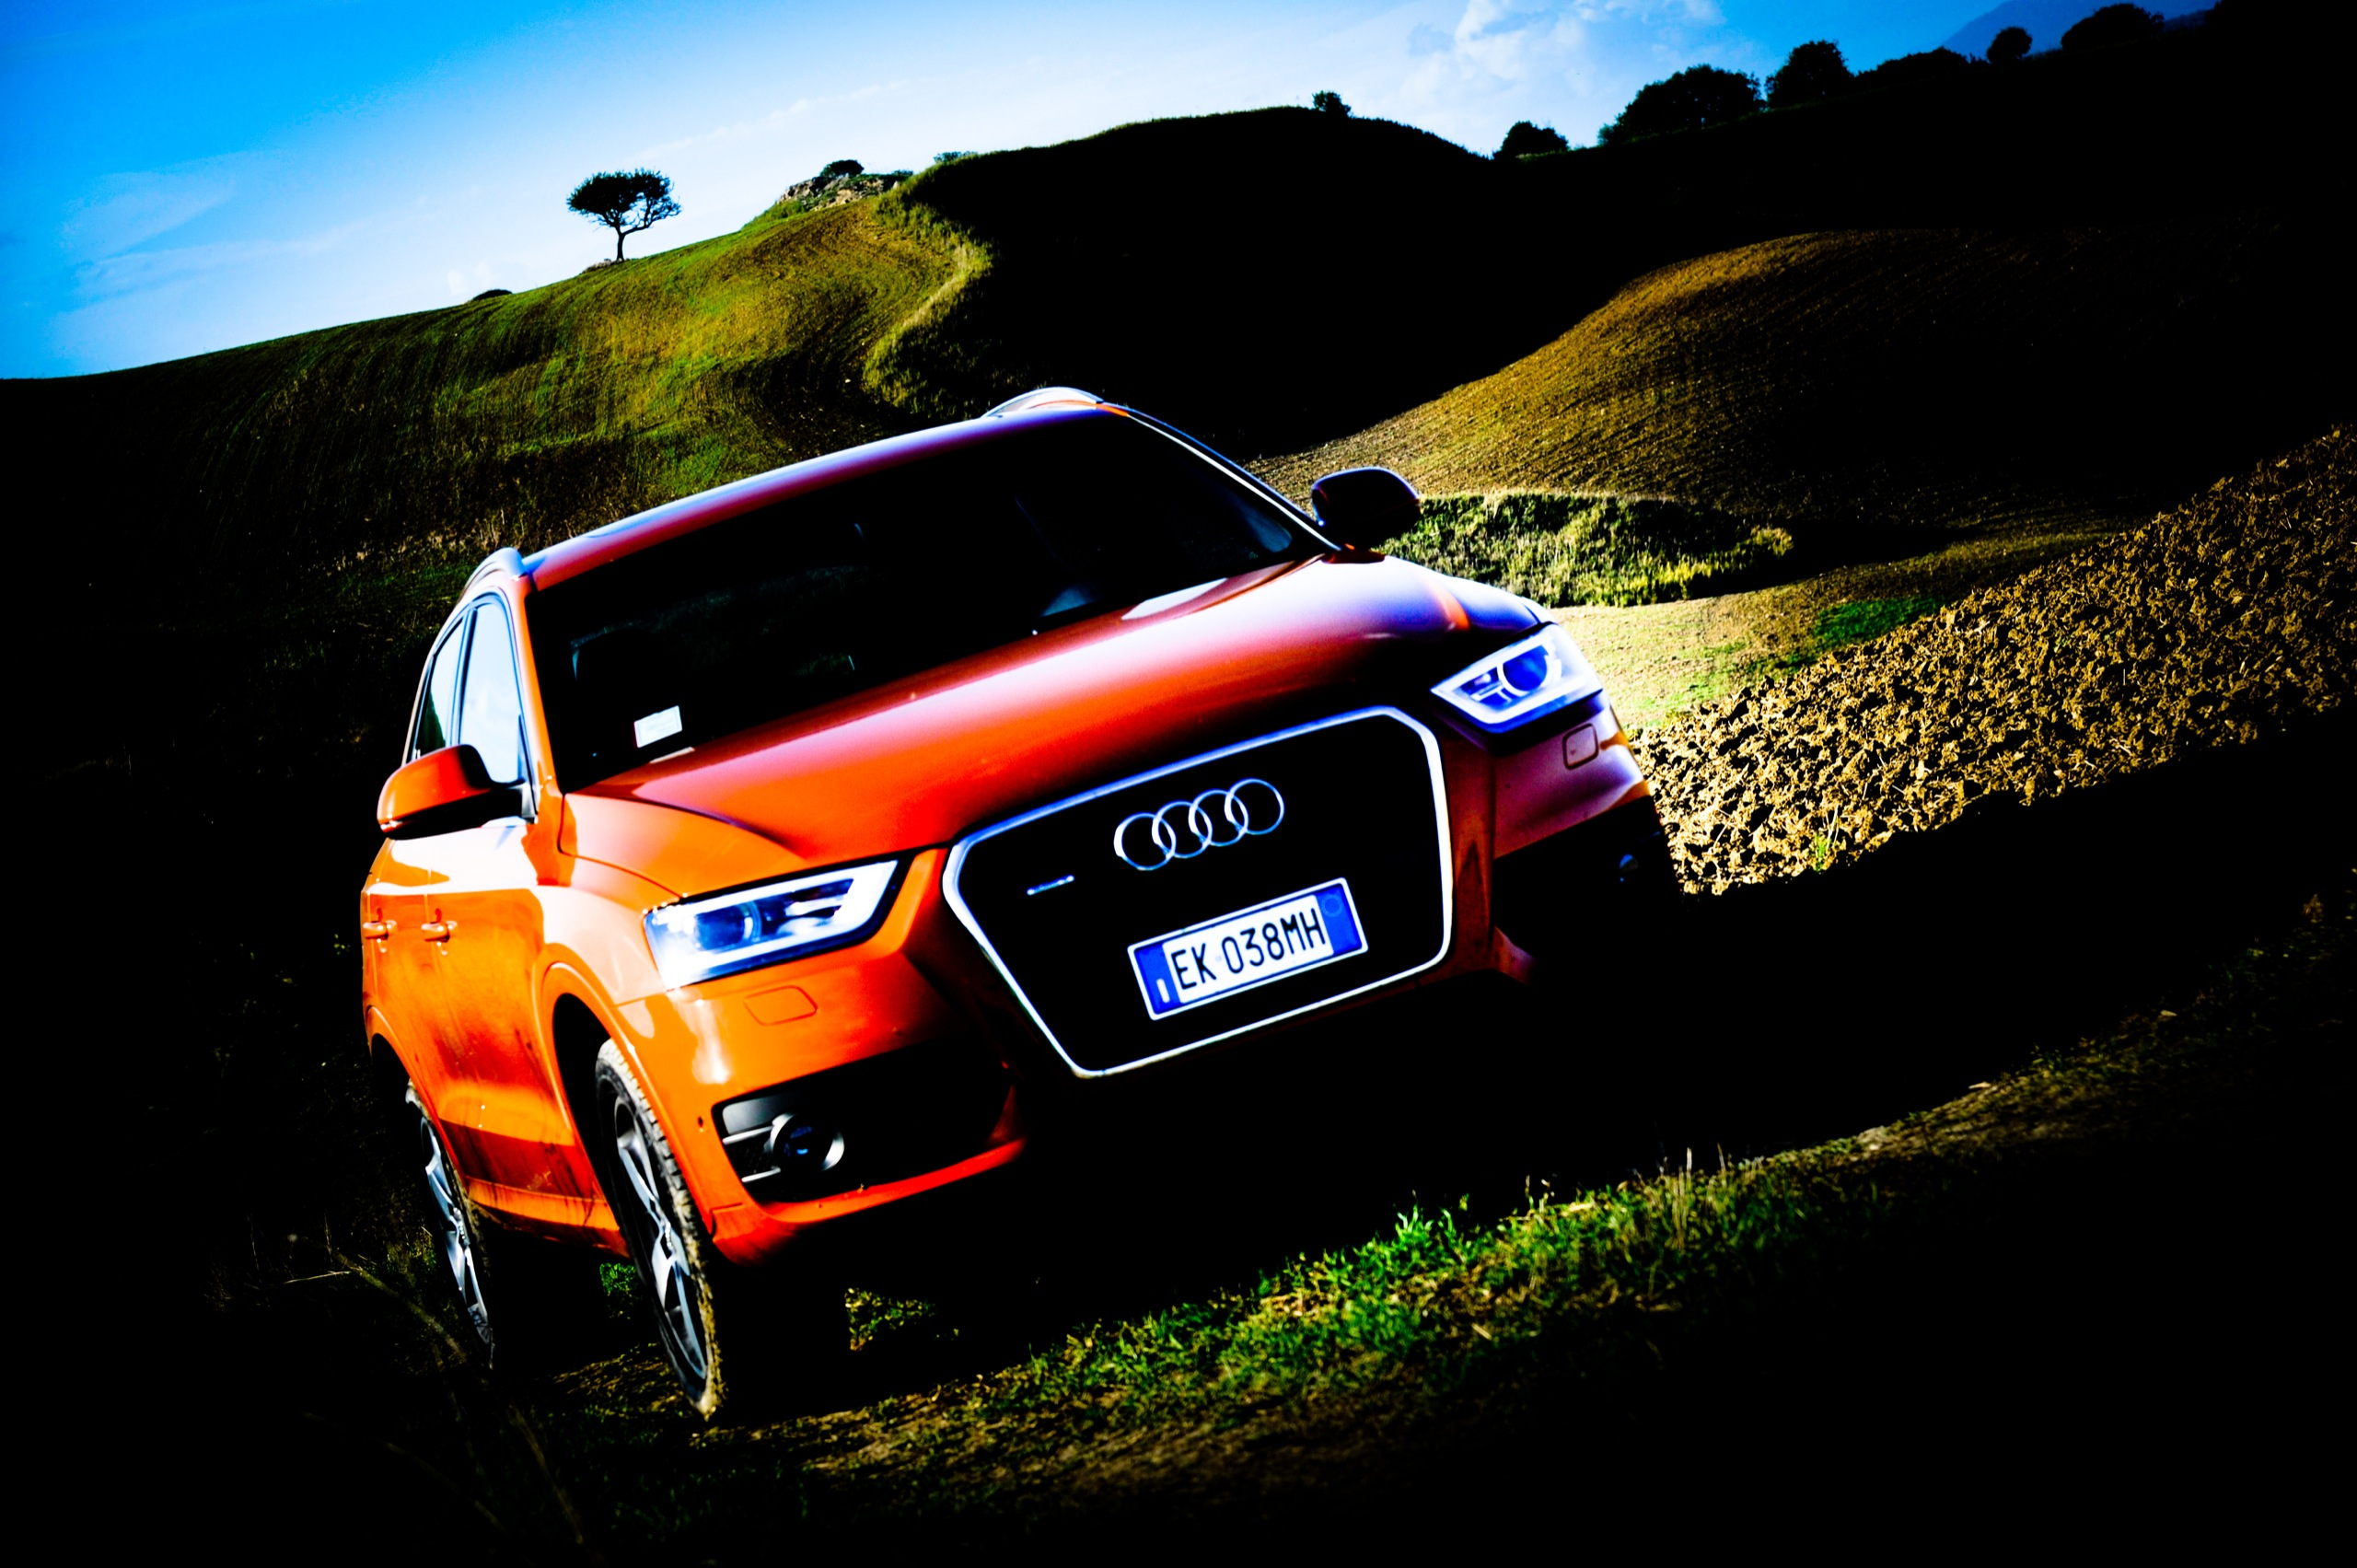 AUDI Q3mrlukkor @drivelife.it magazine on line